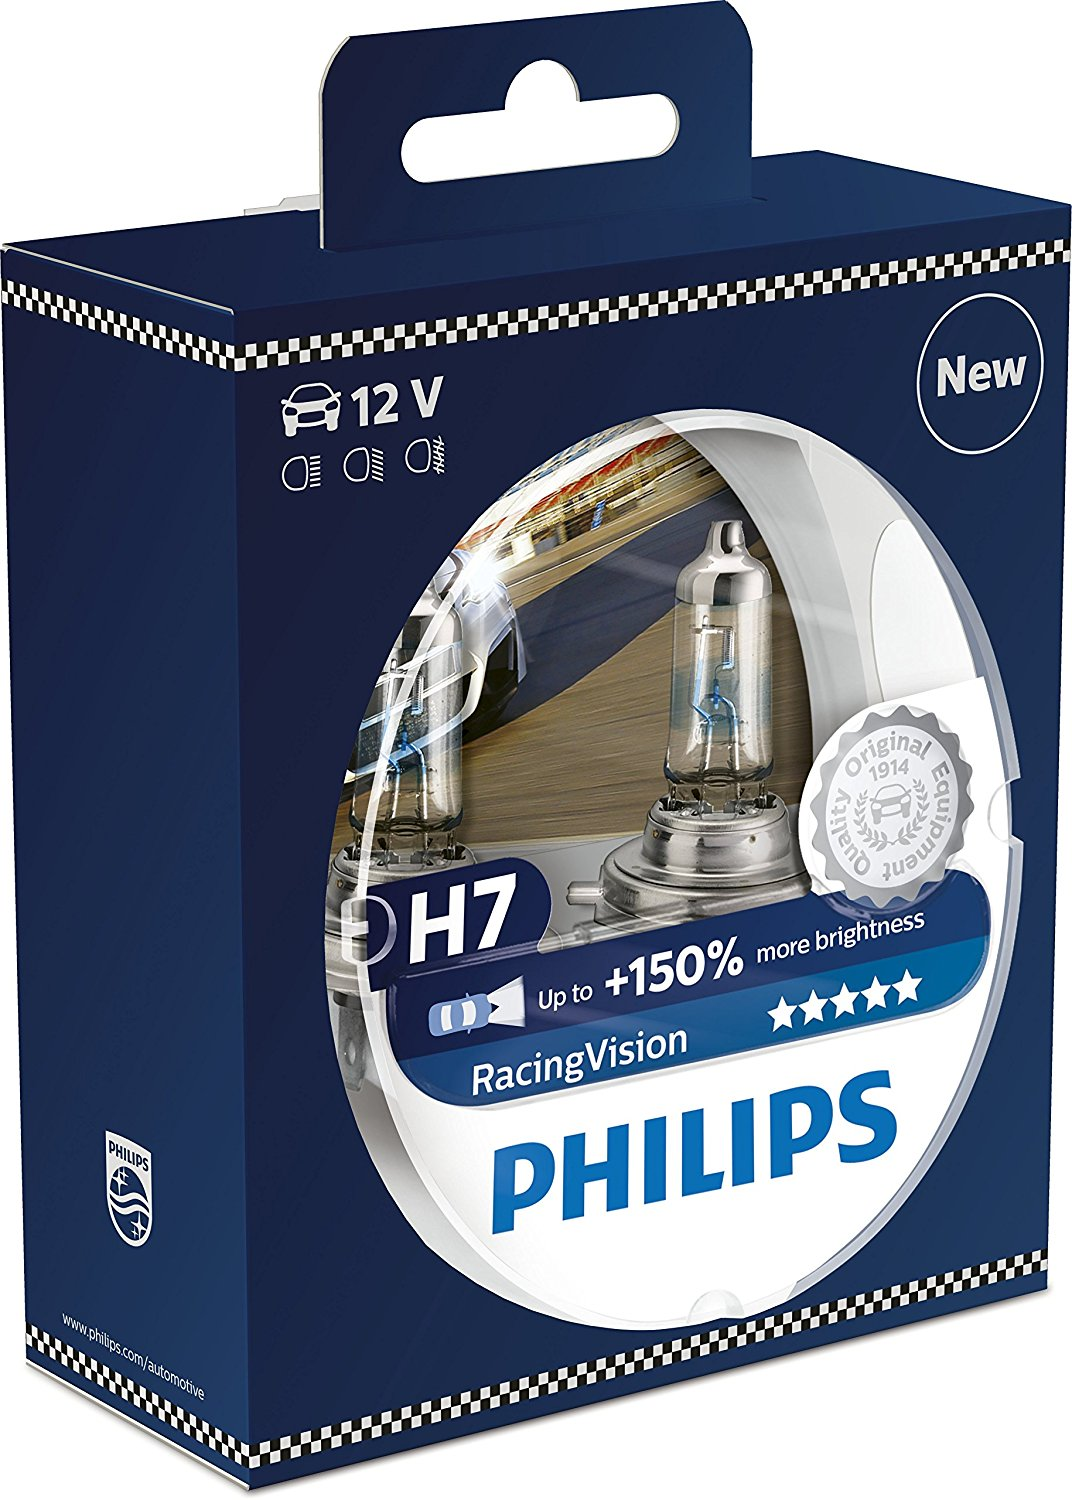 Ampoules H7 Philips Philips Vision150 Ampoules Vision150 H7 Ampoules H7 Racing Racing vwm8OynNP0